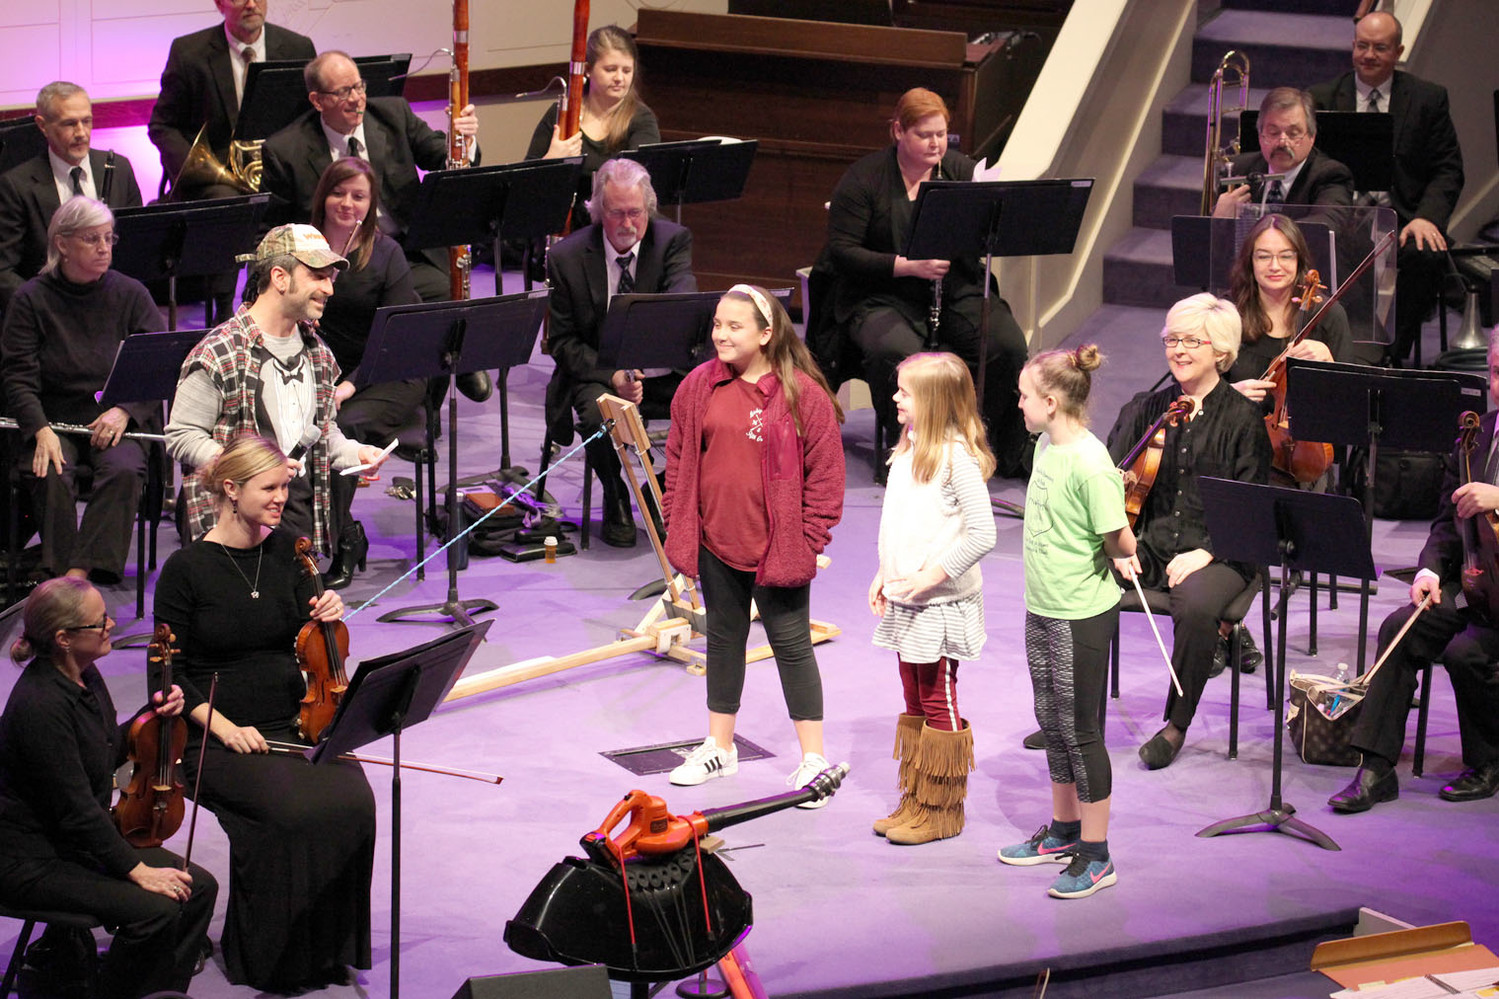 DURING THIS SEGMENT, Narrator Tator, left, relies on three lucky students to help him cue the orchestra to play certain melodies, rhythms and harmonies. From left are Tator, Klover Richardson, Michigan Avenue Elementary; Ellen Adams, Hopewell Elementary; and Anna Claire Gibson, Black Fox Elementary.